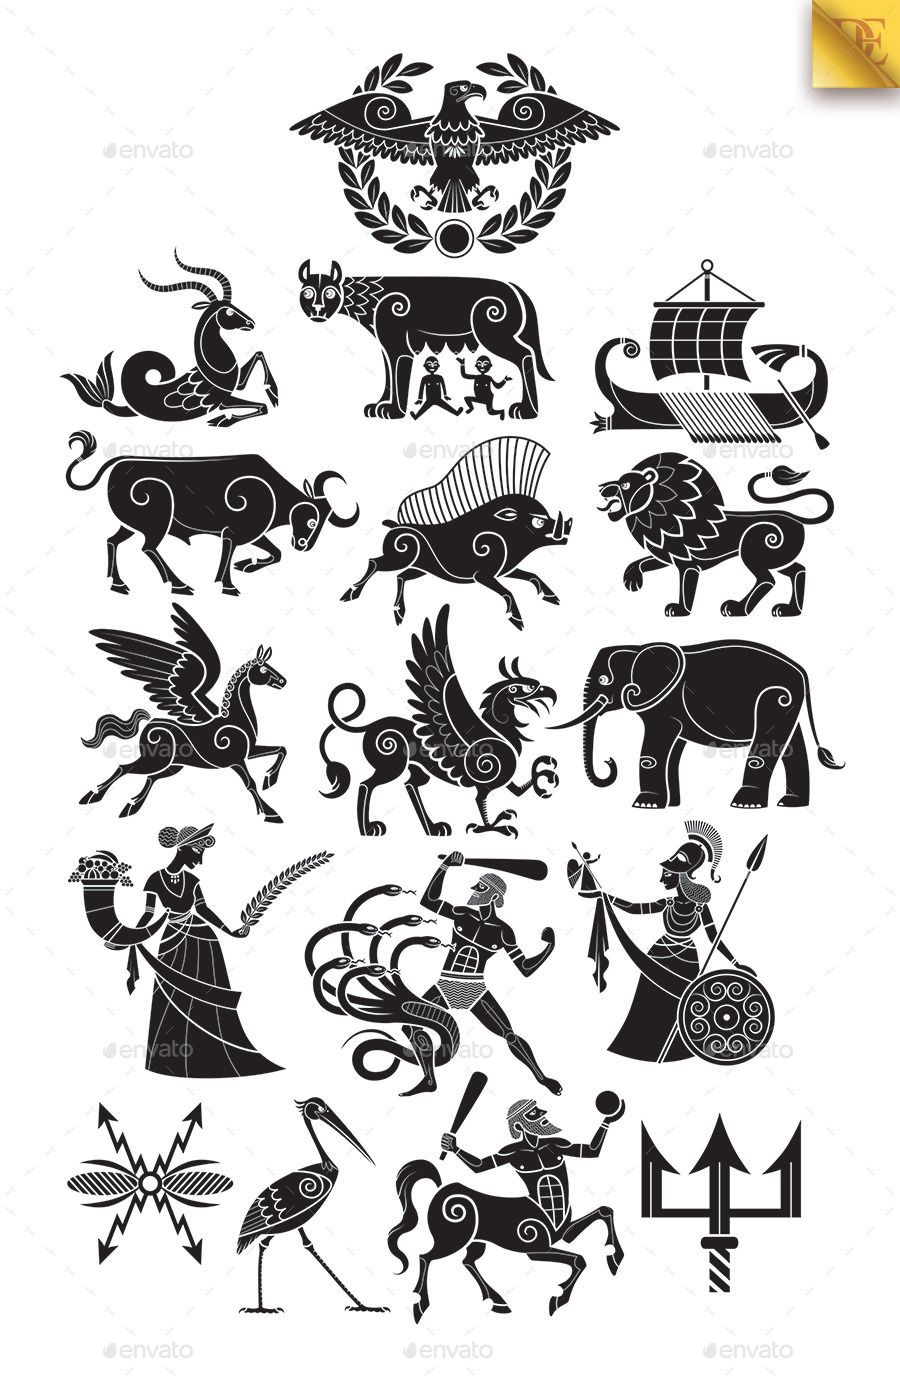 alpha and omega symbols - Google Search. RomansSymbolsSketches